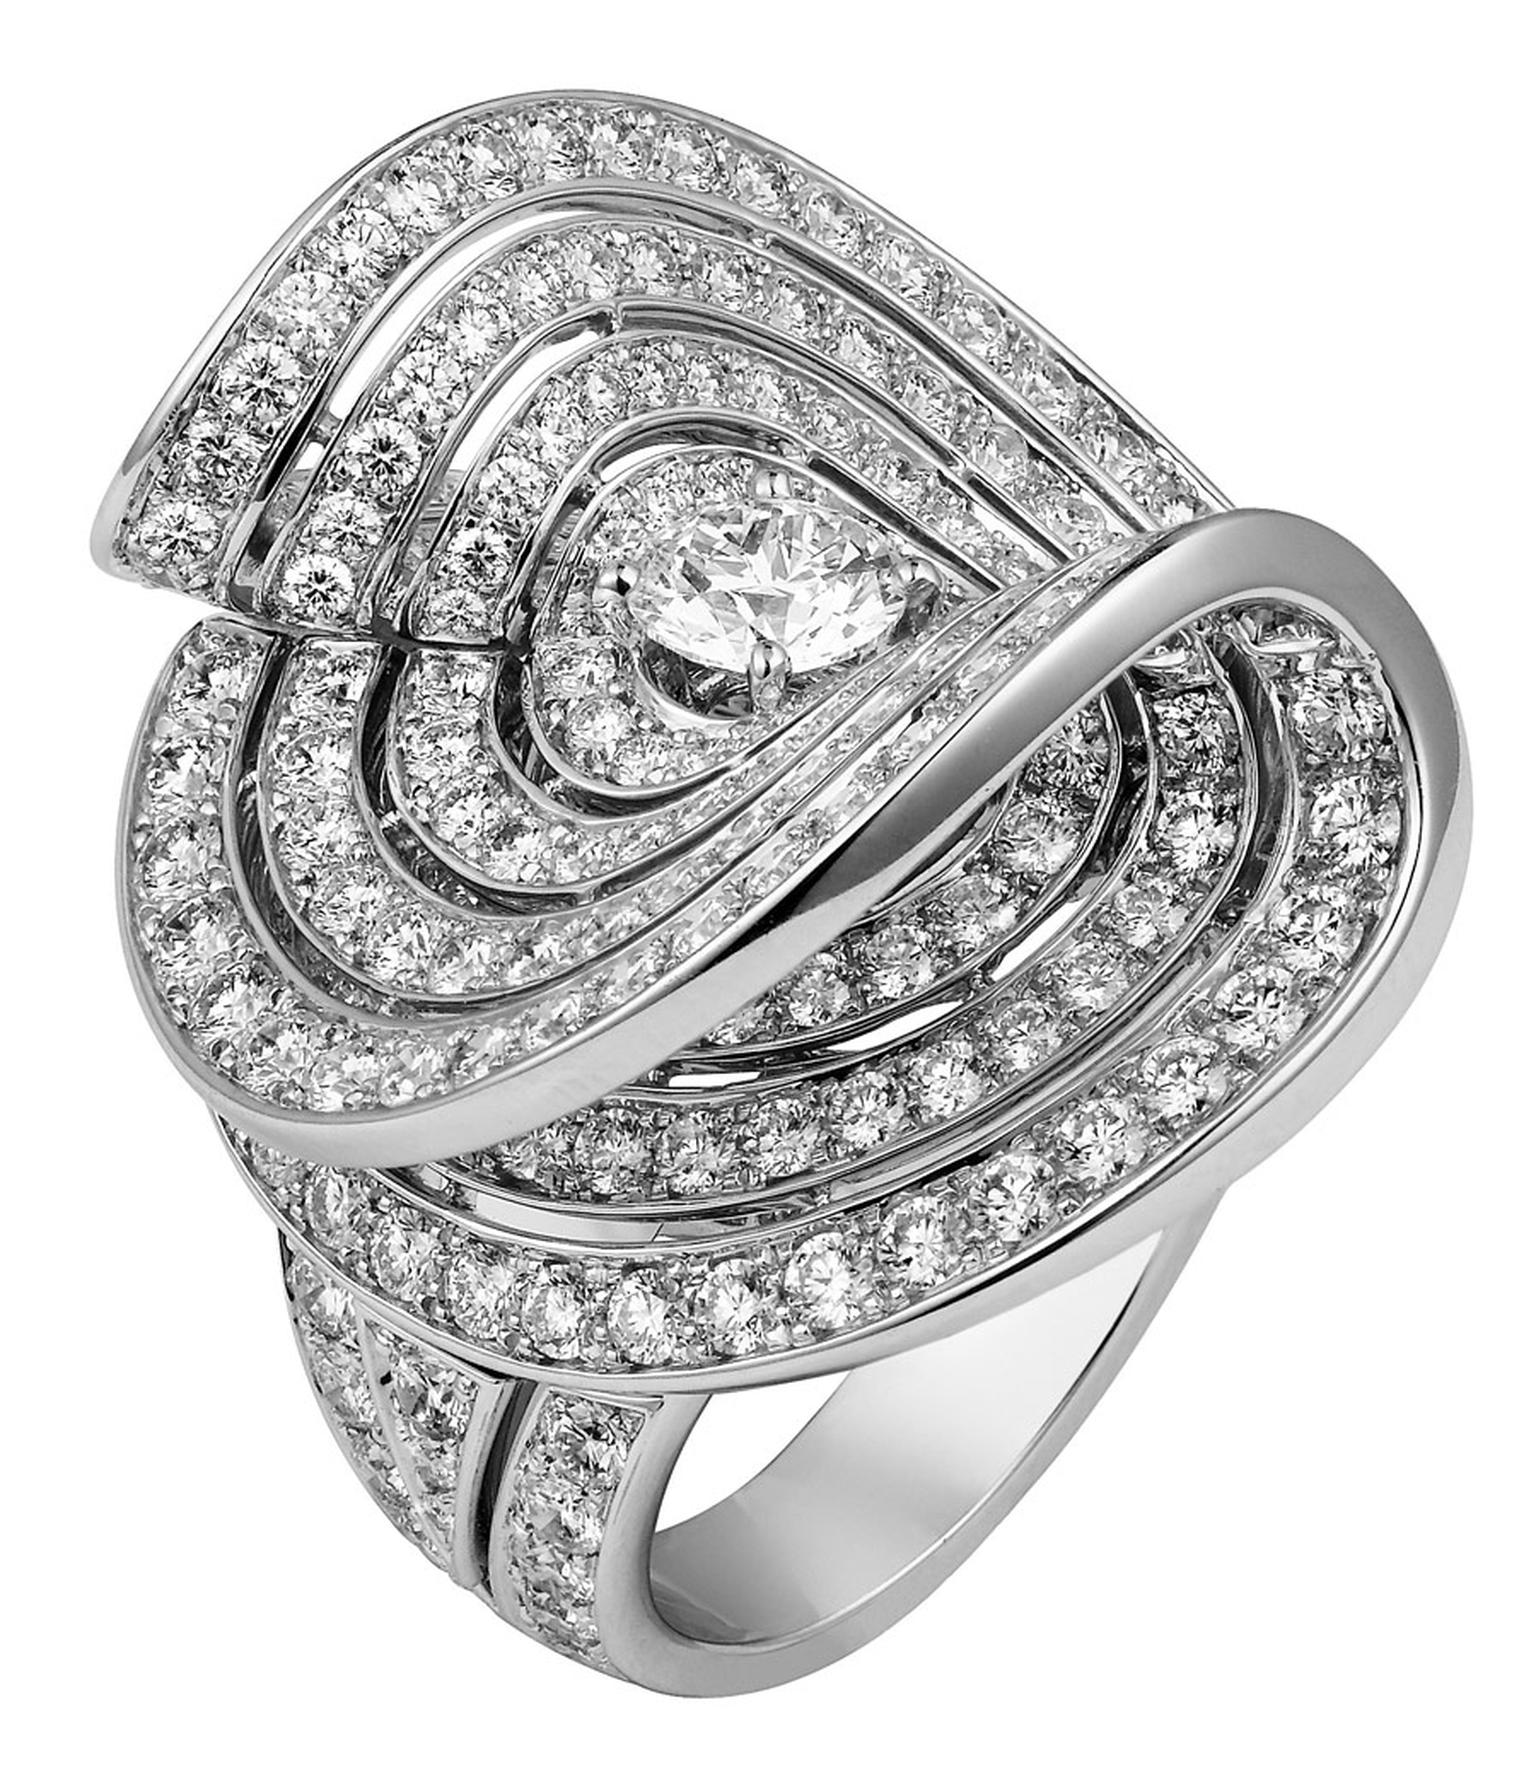 Cartier-Urban-ring-4.jpg